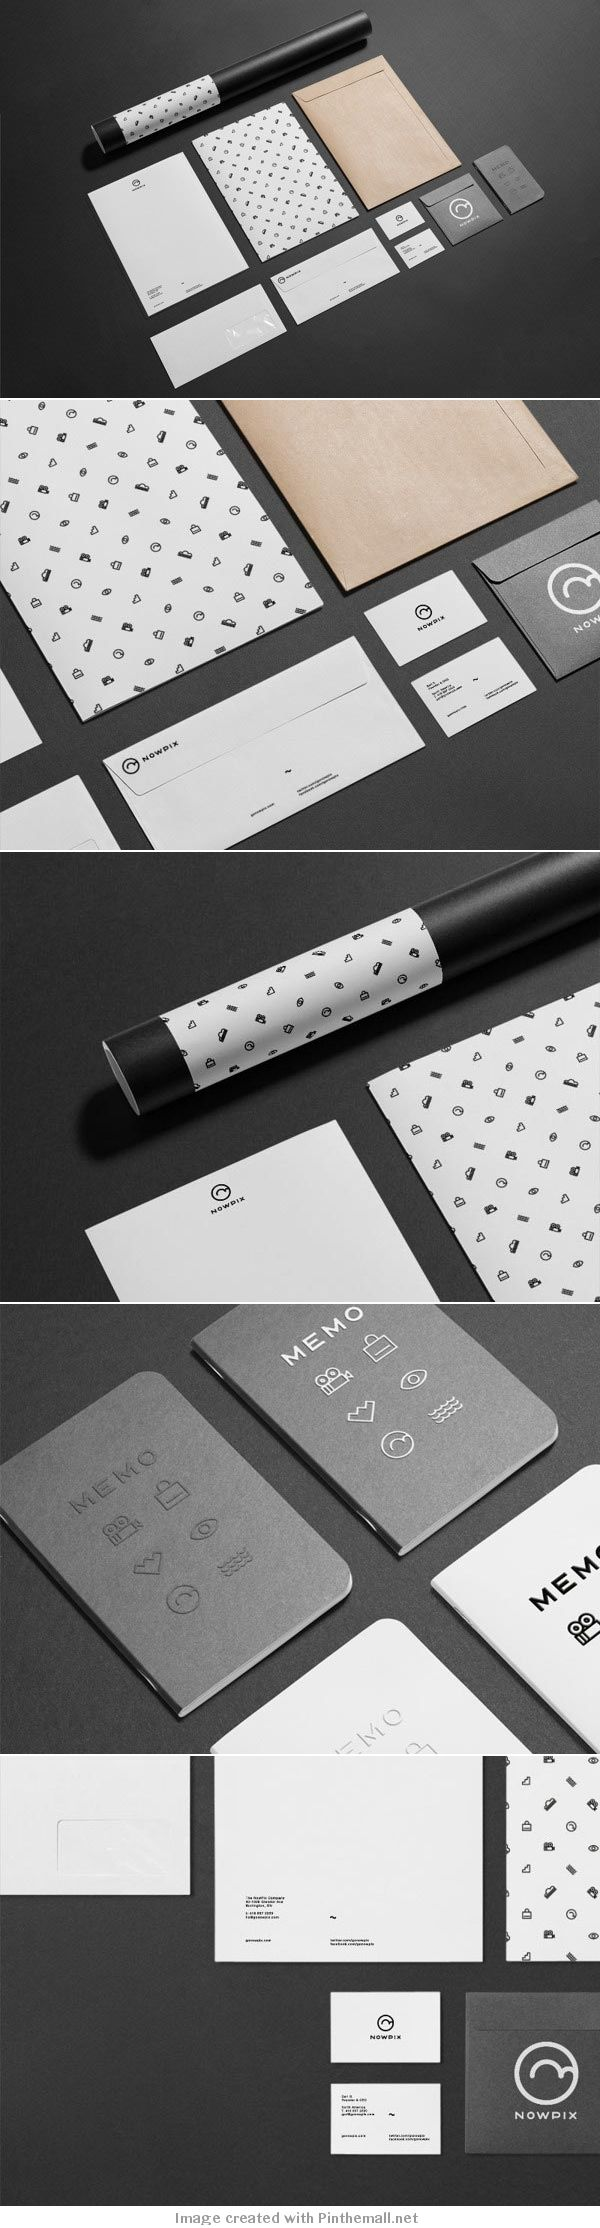 Love this pattern and how icons can be used independently on the memo notebooks. like the spacing and how modern the icons are. NOT hand drawn